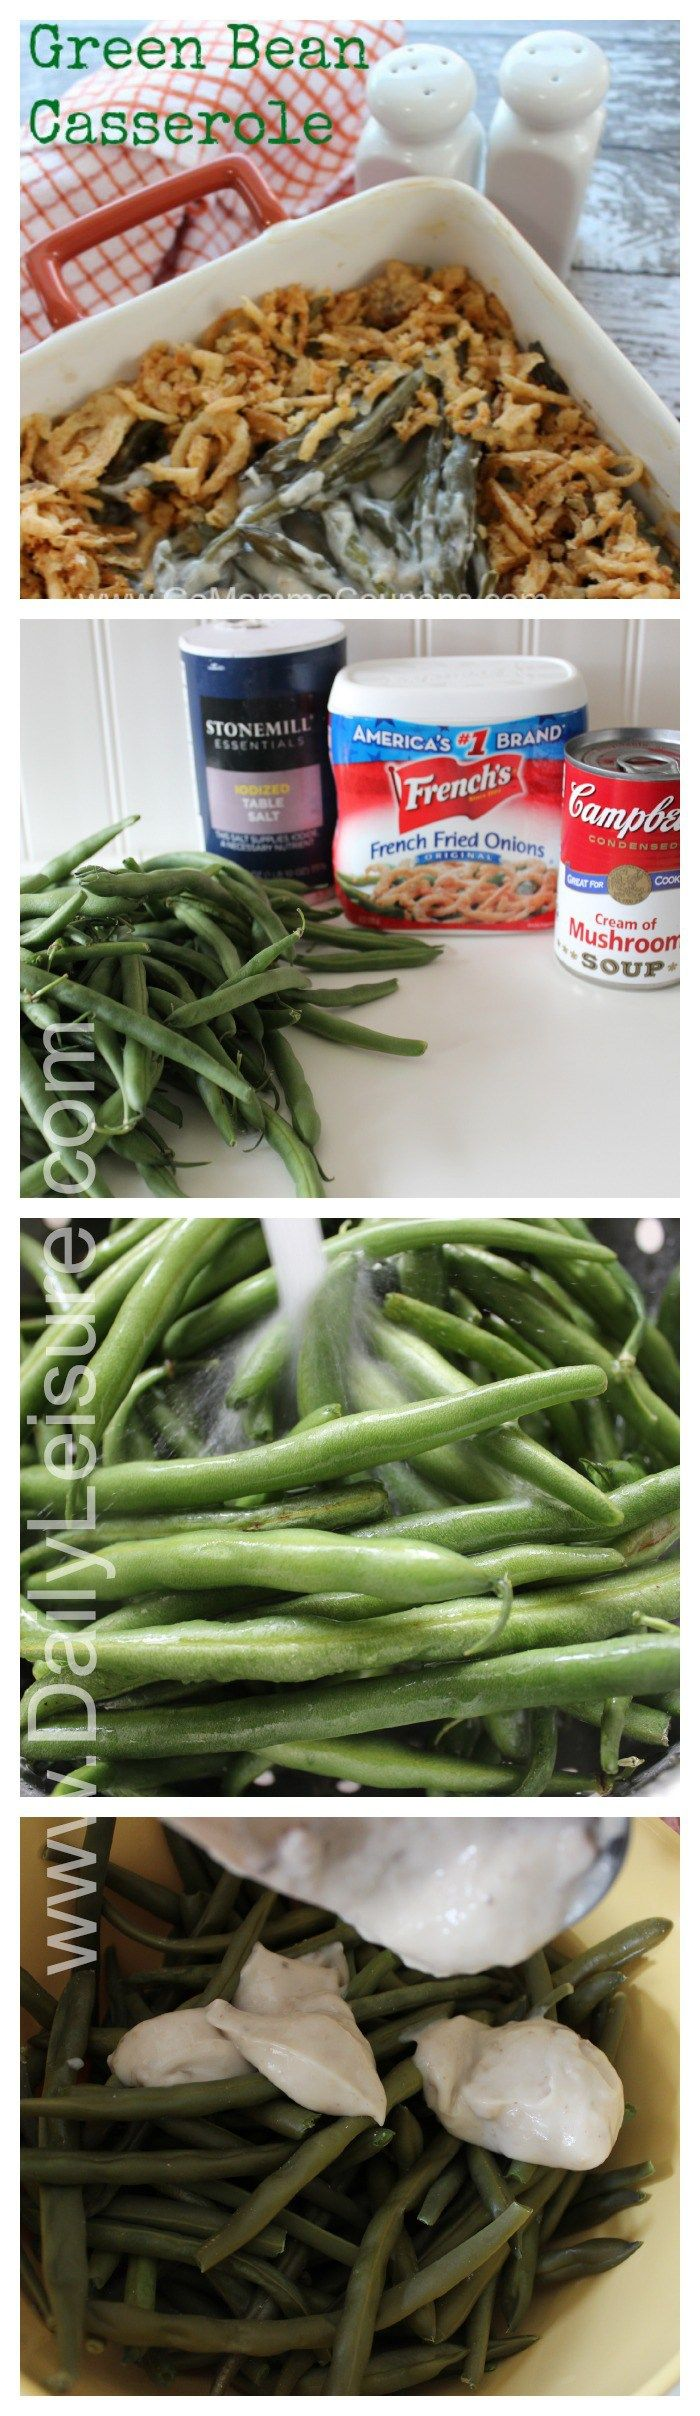 How to make Green Bean cassarole